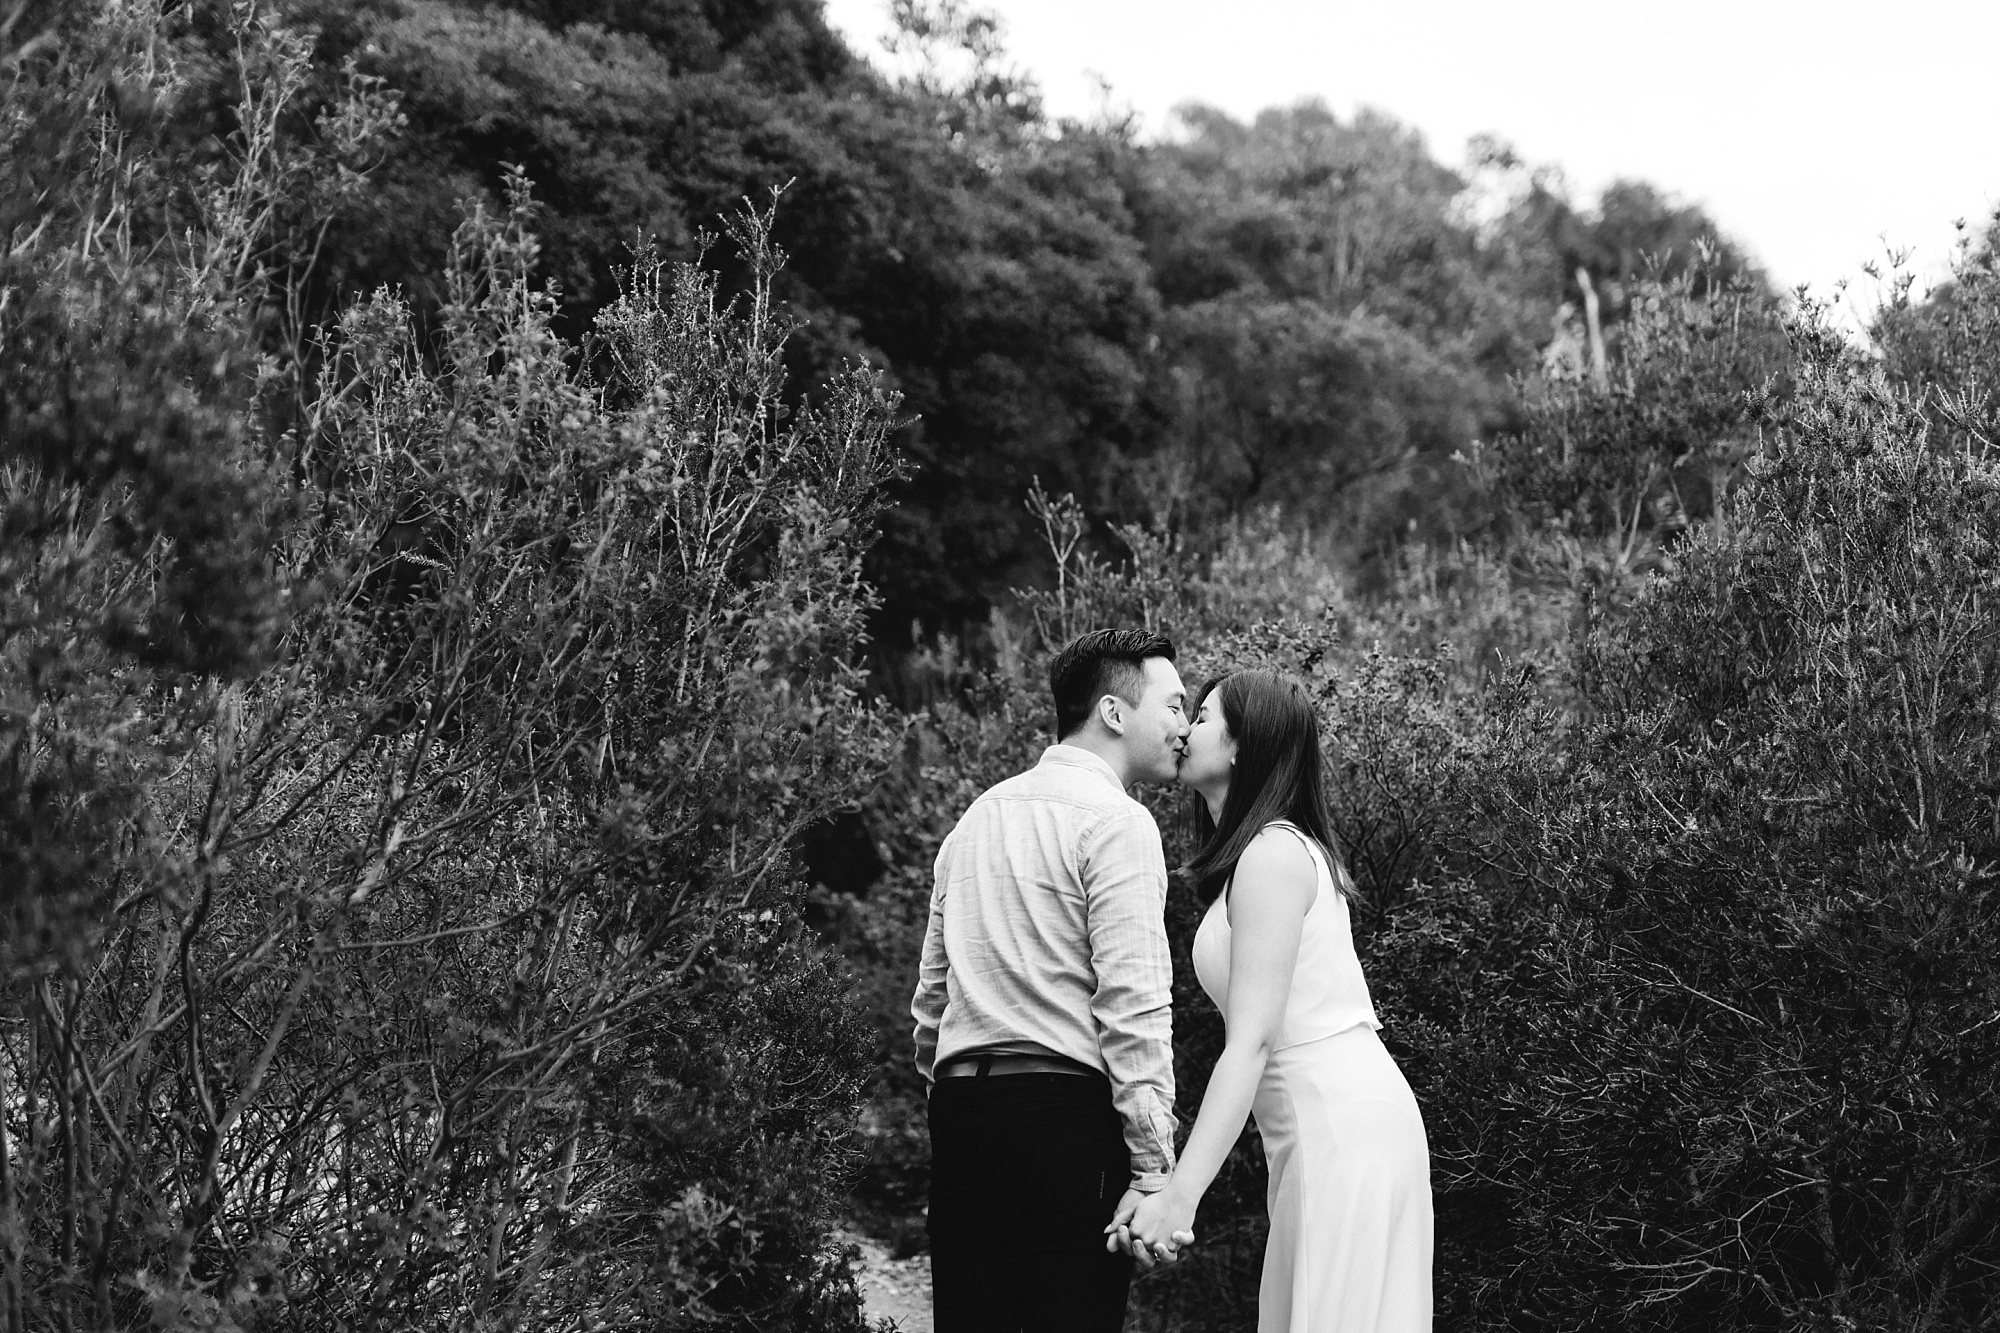 Torquay Lorne Natural and Fun Engagement Wedding Photographer 178.JPG